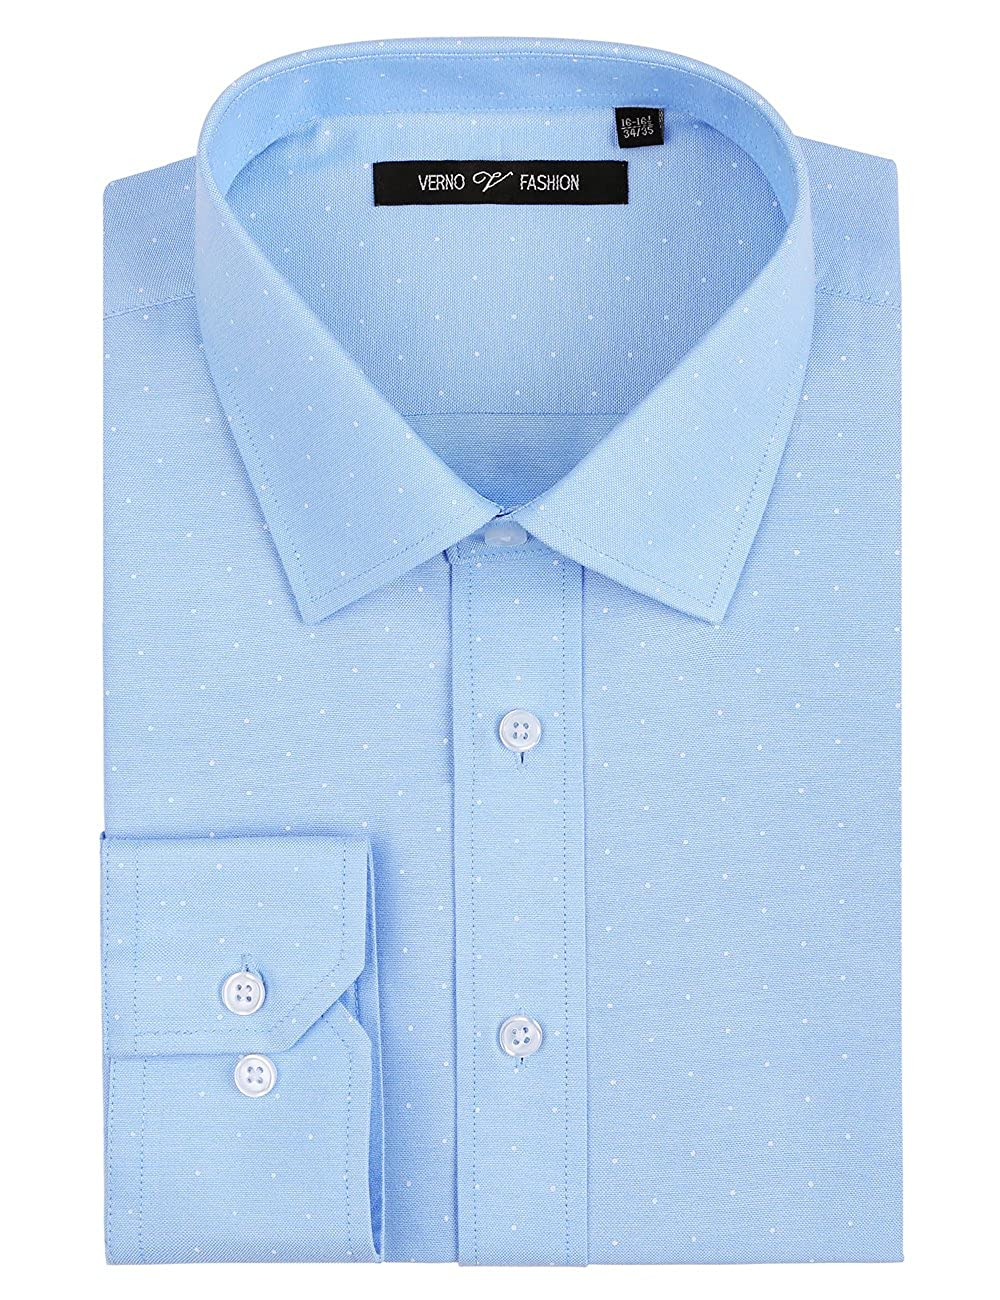 ff375cbeb792 Classic fit, Polk-a-dot printed shirts. Spread collar with removable collar  stays/ Long tapered sleeves/ Provide three choices ...